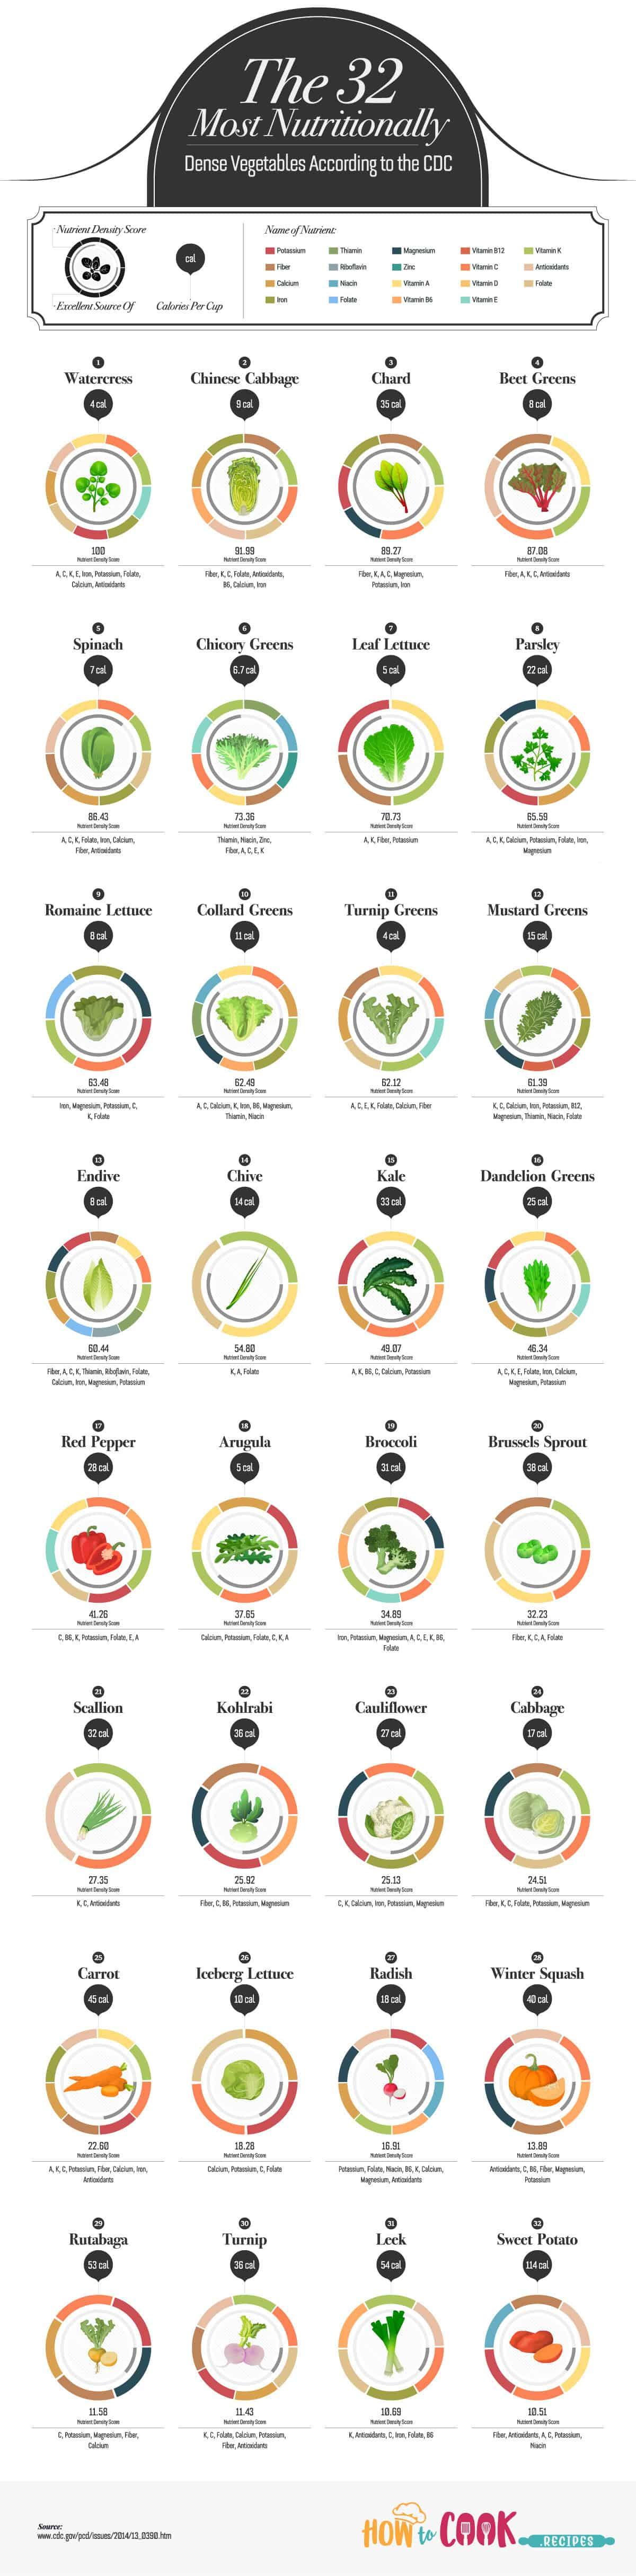 The 32 Most Nutritional Vegetables According to the CDC